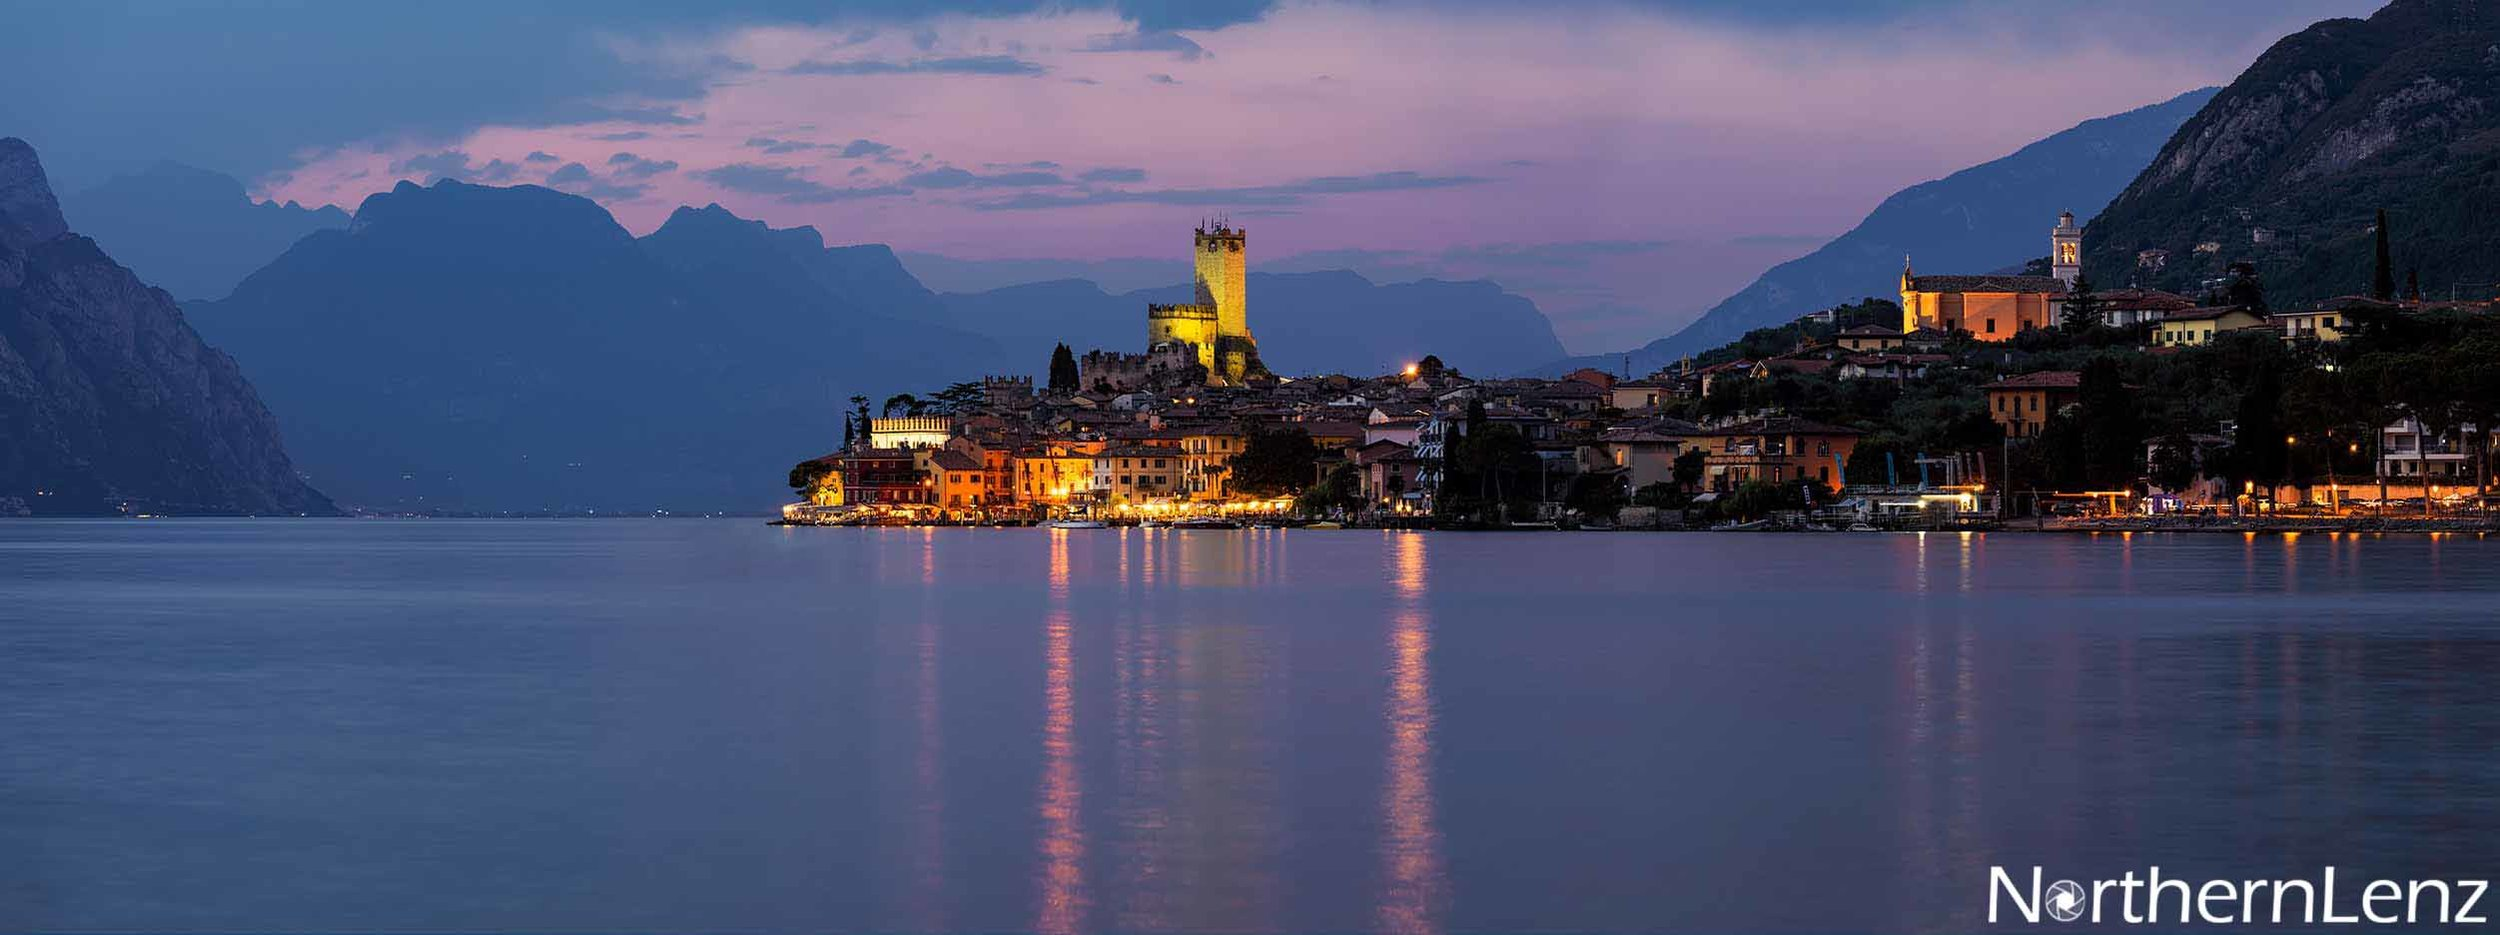 View of Malcesine, Lake Garda at dusk  Image Ref: WW06